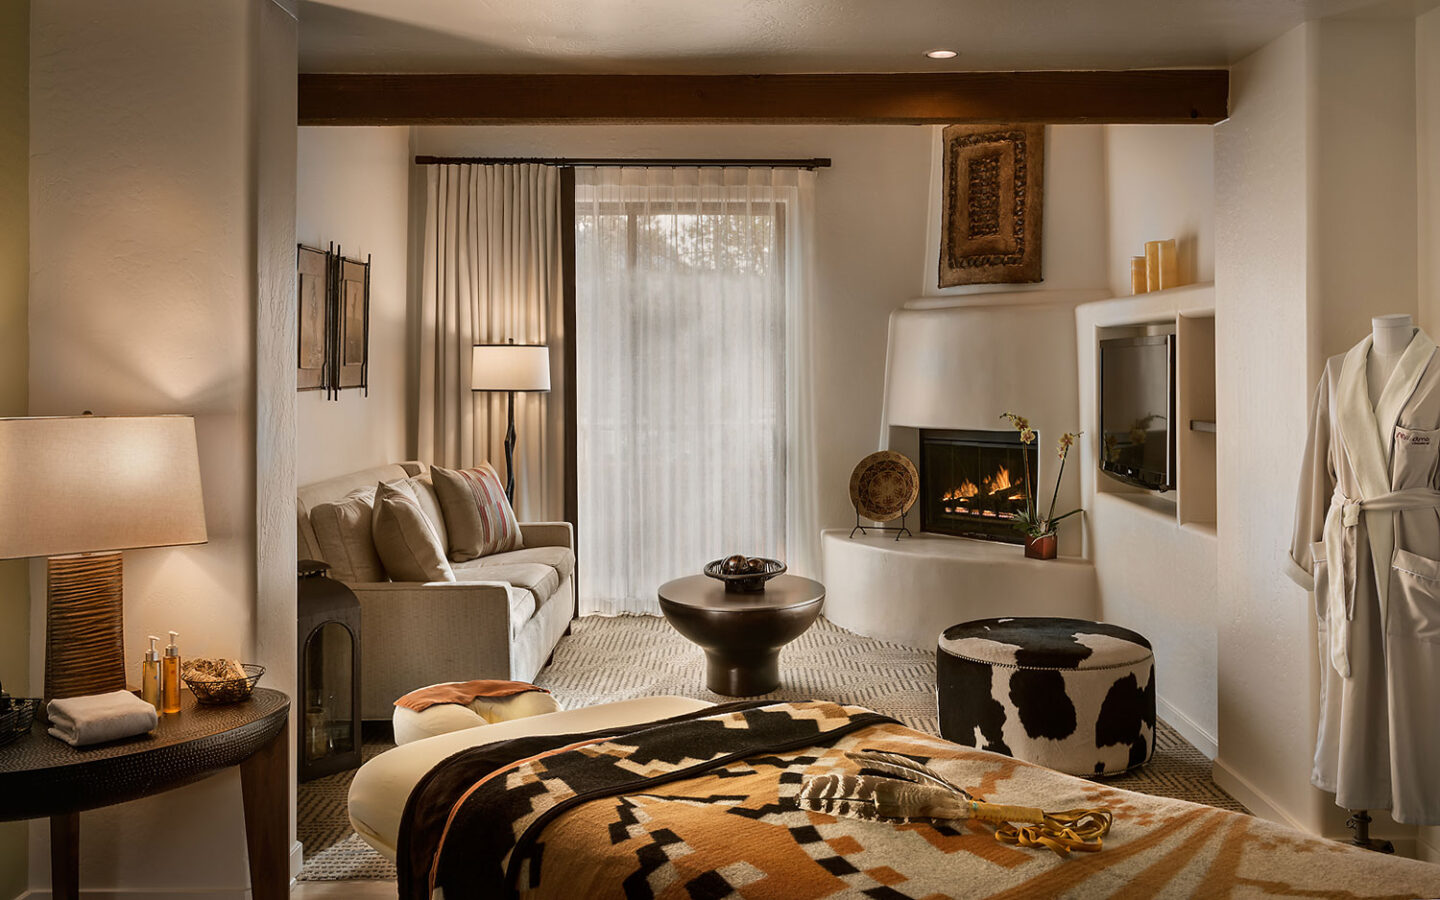 spa room with spa bed, sofa, fireplace and bath robe